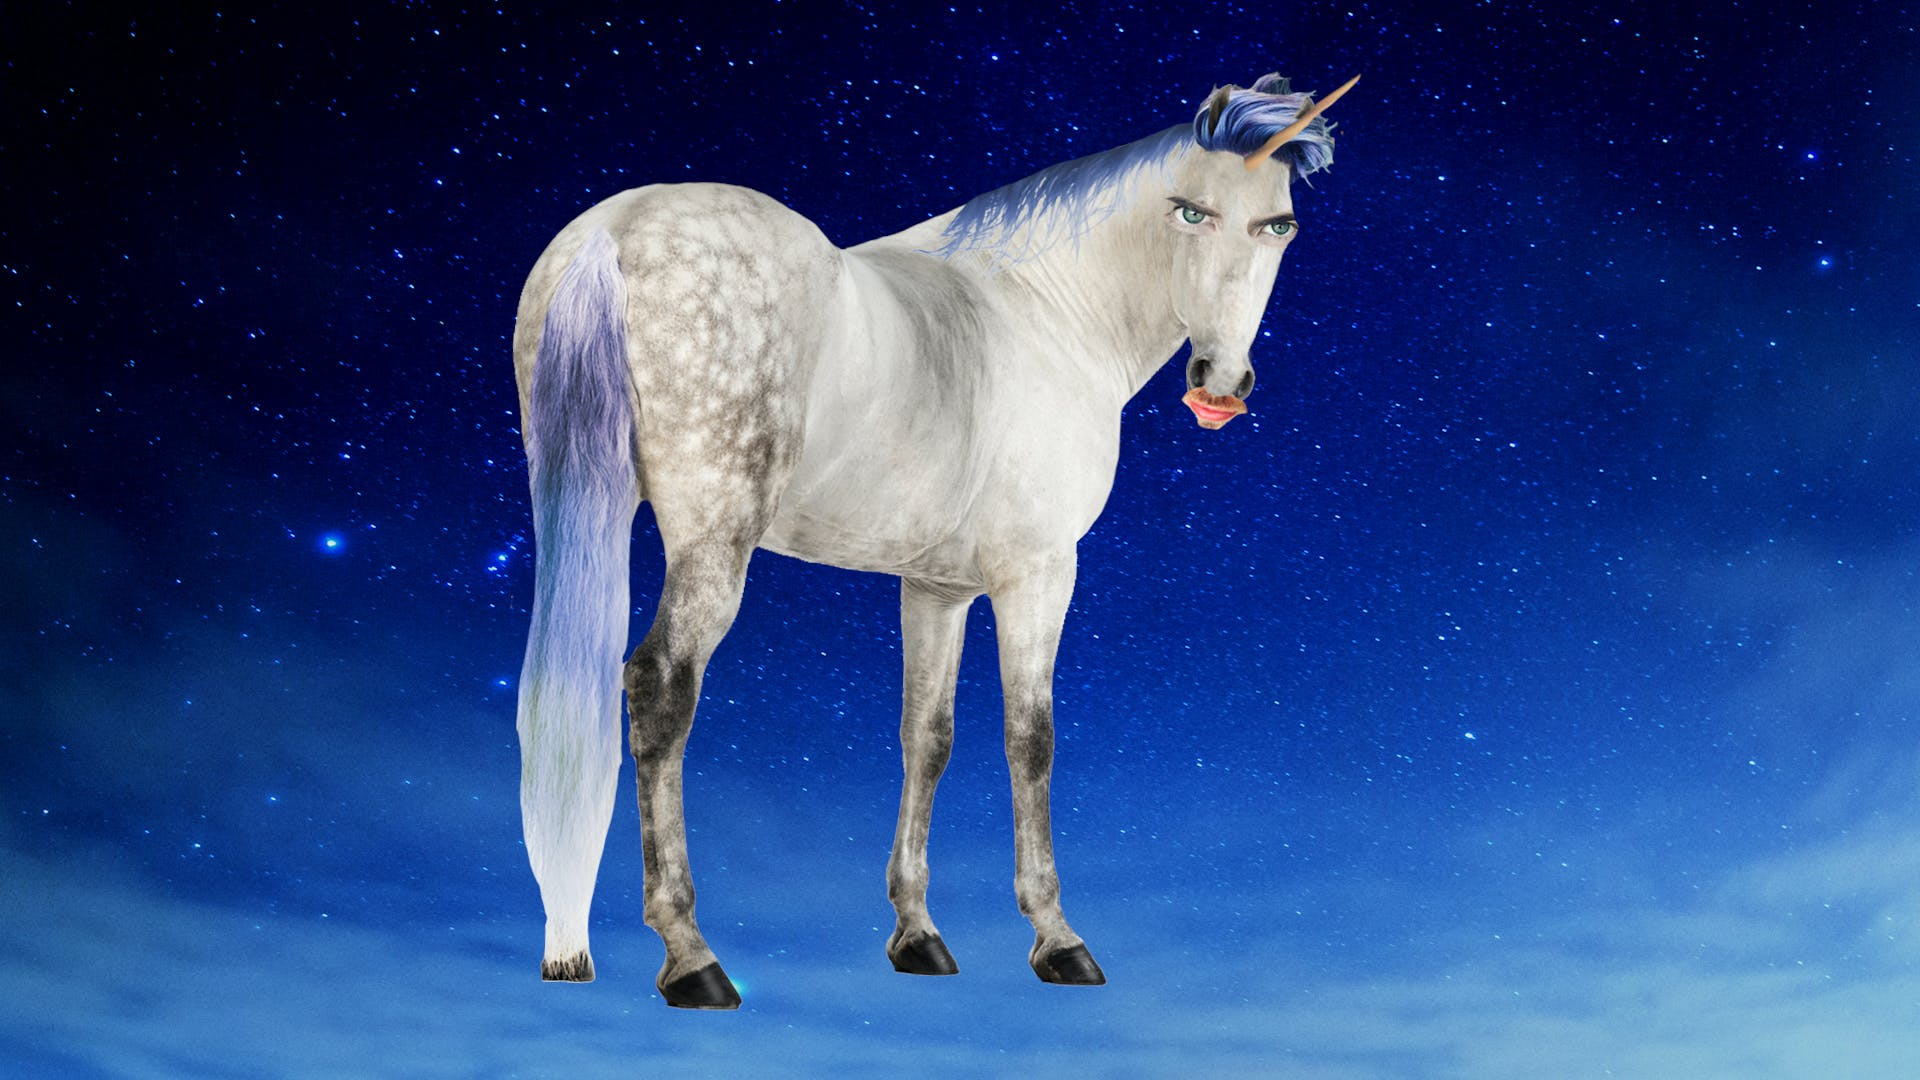 Joey Graceffa as a unicorn